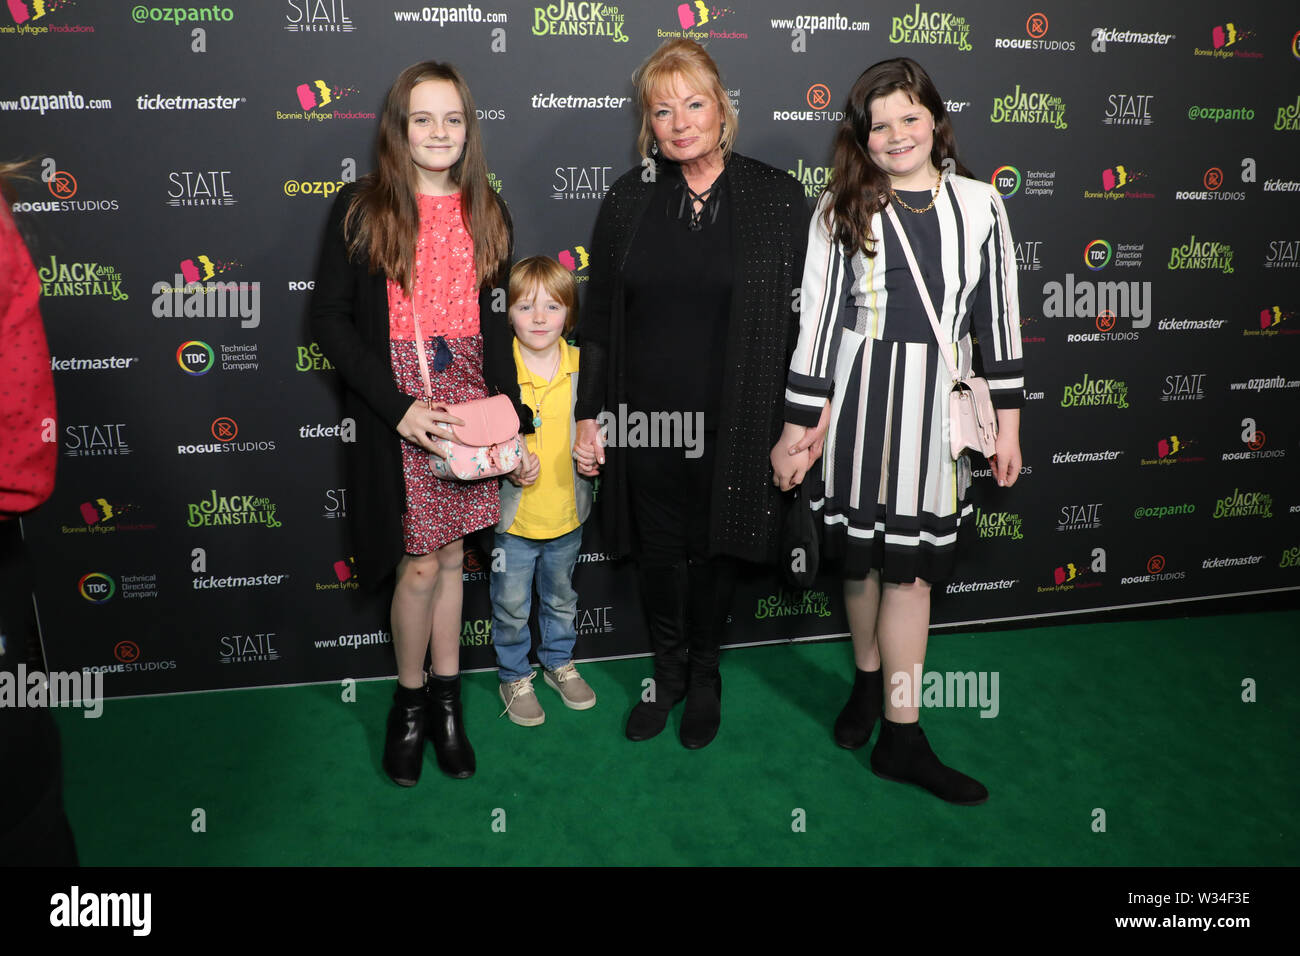 Sydney, Australia. 12th July 2019. Jack and the Beanstalk Giant 3D musical spectacular red carpet at the State Theatre. Credit: Richard Milnes/Alamy Live News Stock Photo